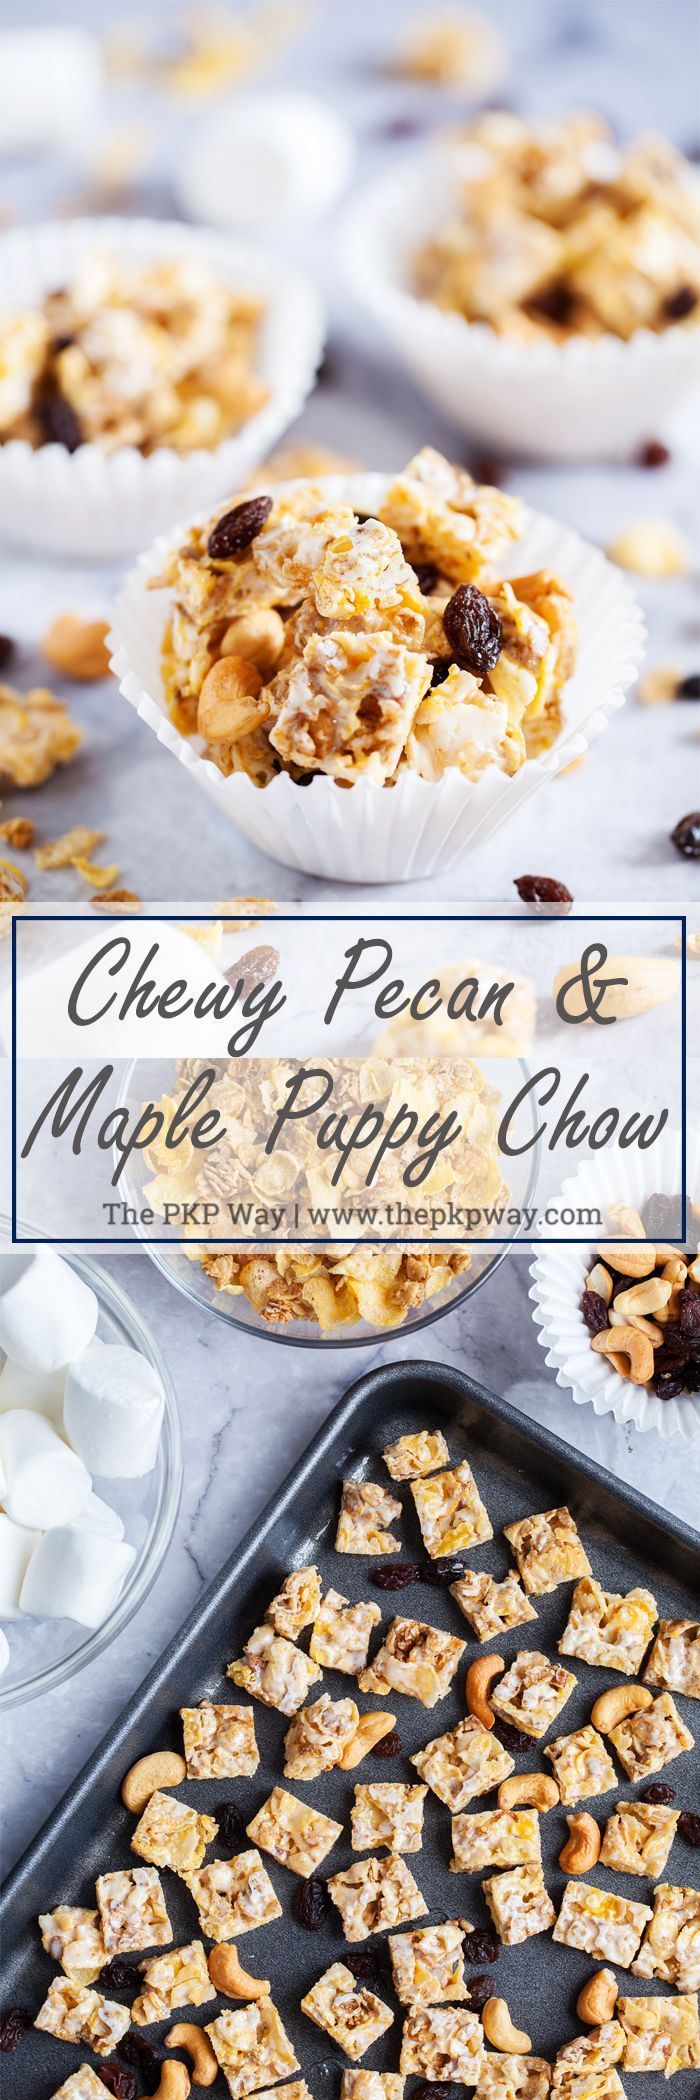 Chewy Pecan & Maple Puppy Chow with soft and chewy raisins and crunchy cashews is a fun and non-traditional way to enjoy cereal.